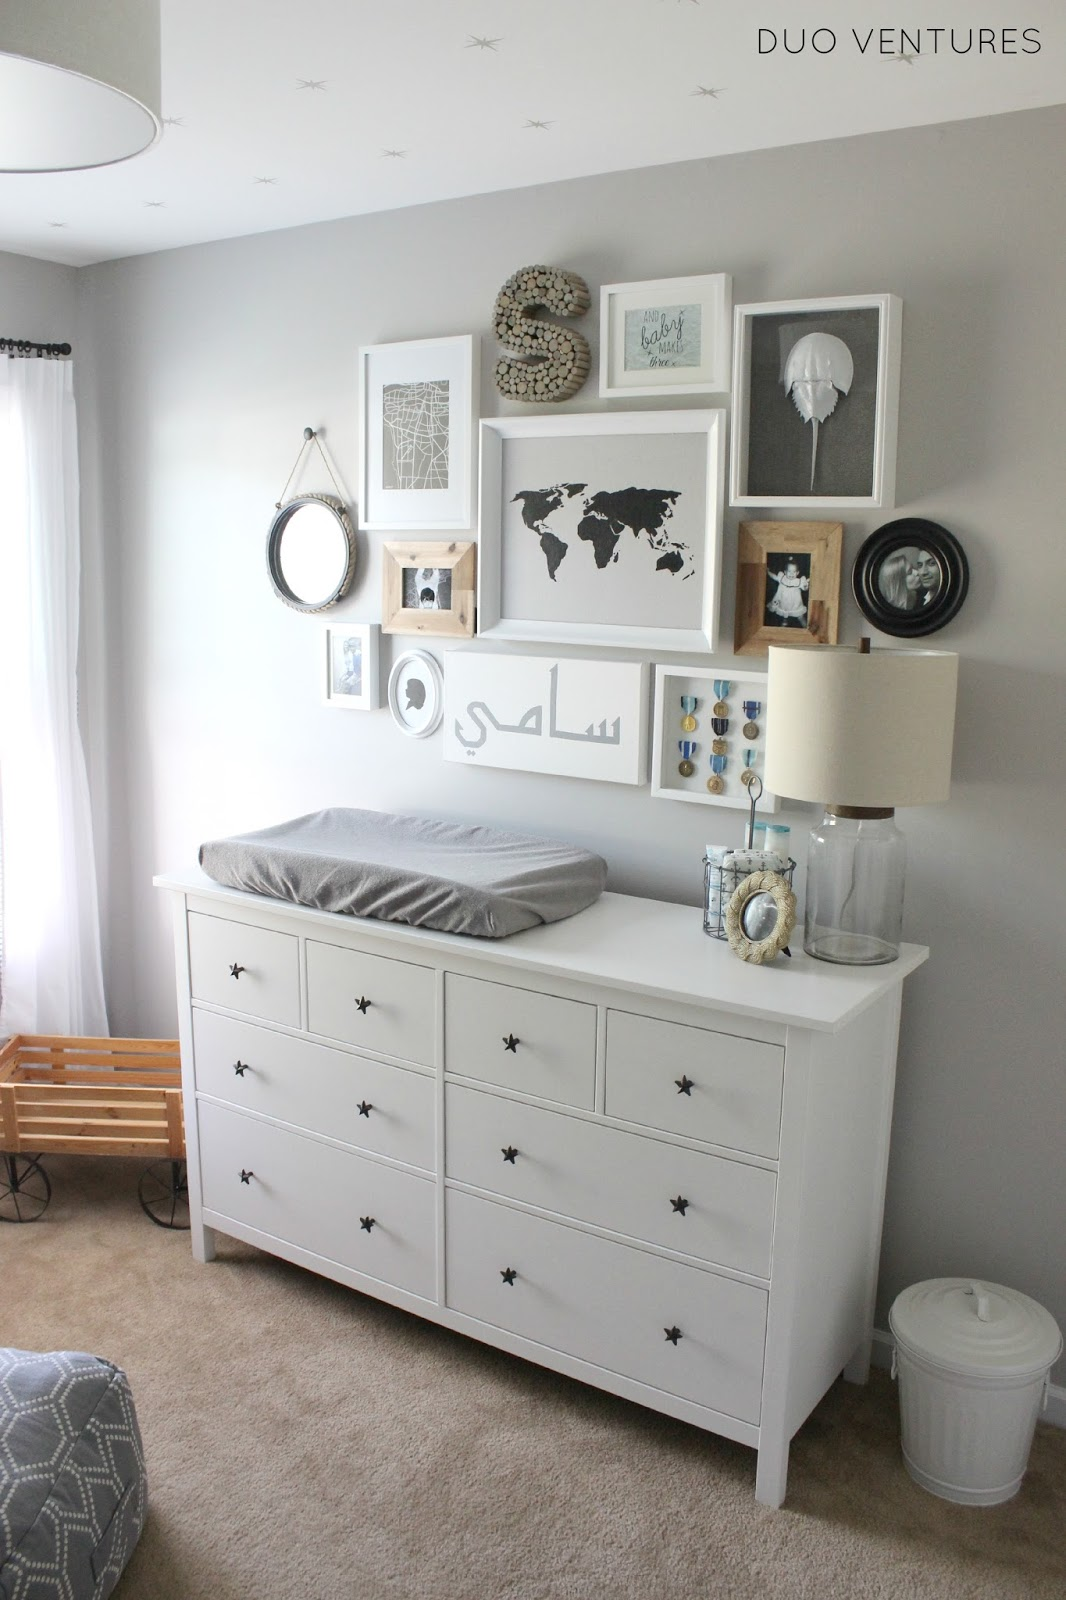 Mueble Comoda Duo Ventures: The Nursery: Custom Ikea Hemnes Dresser